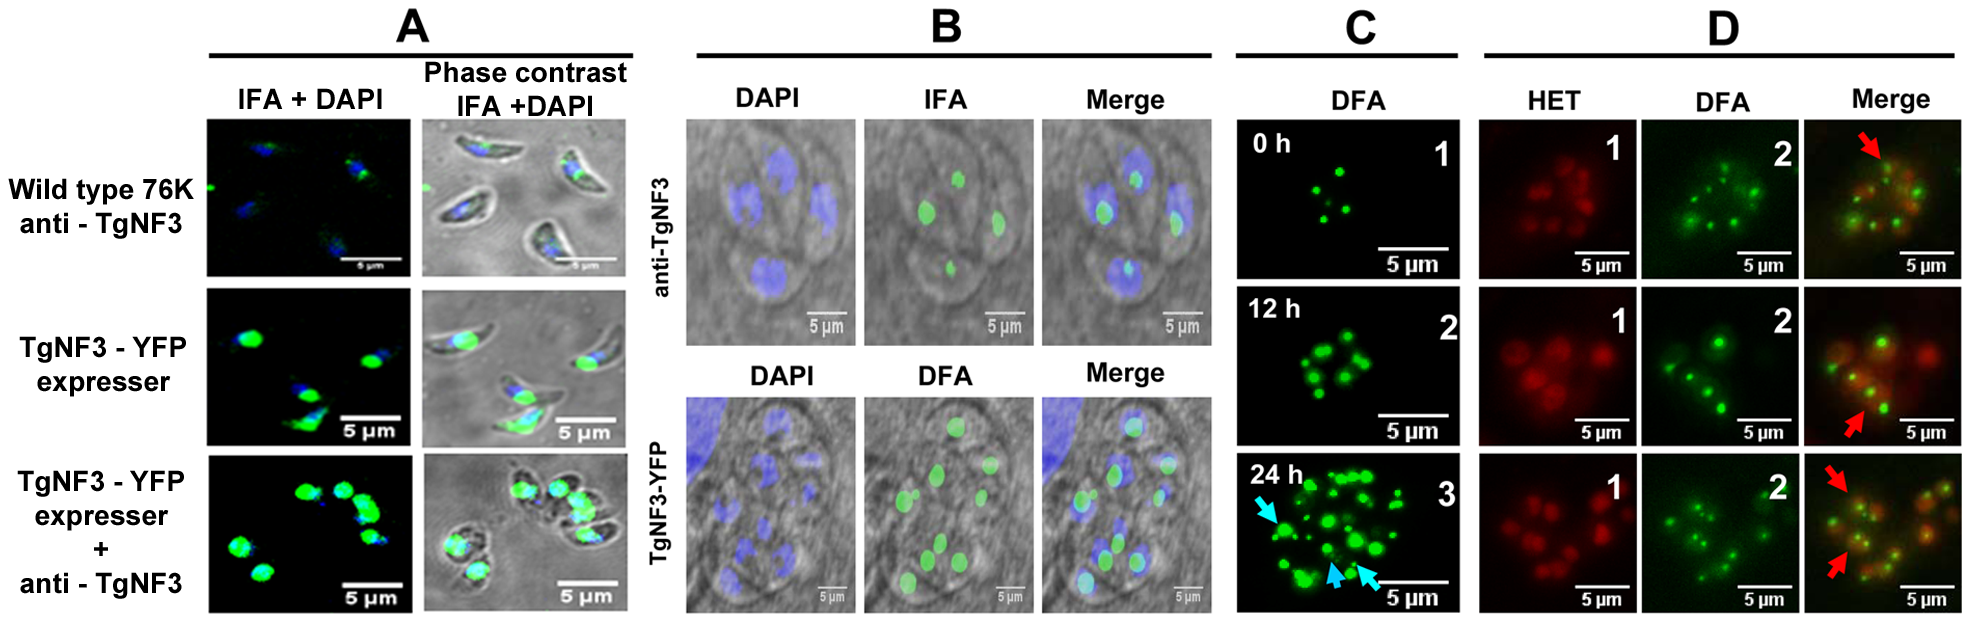 Native TgNF3 and transgenic TgNF3-YFP proteins are preponderant nucleolar resident factors.